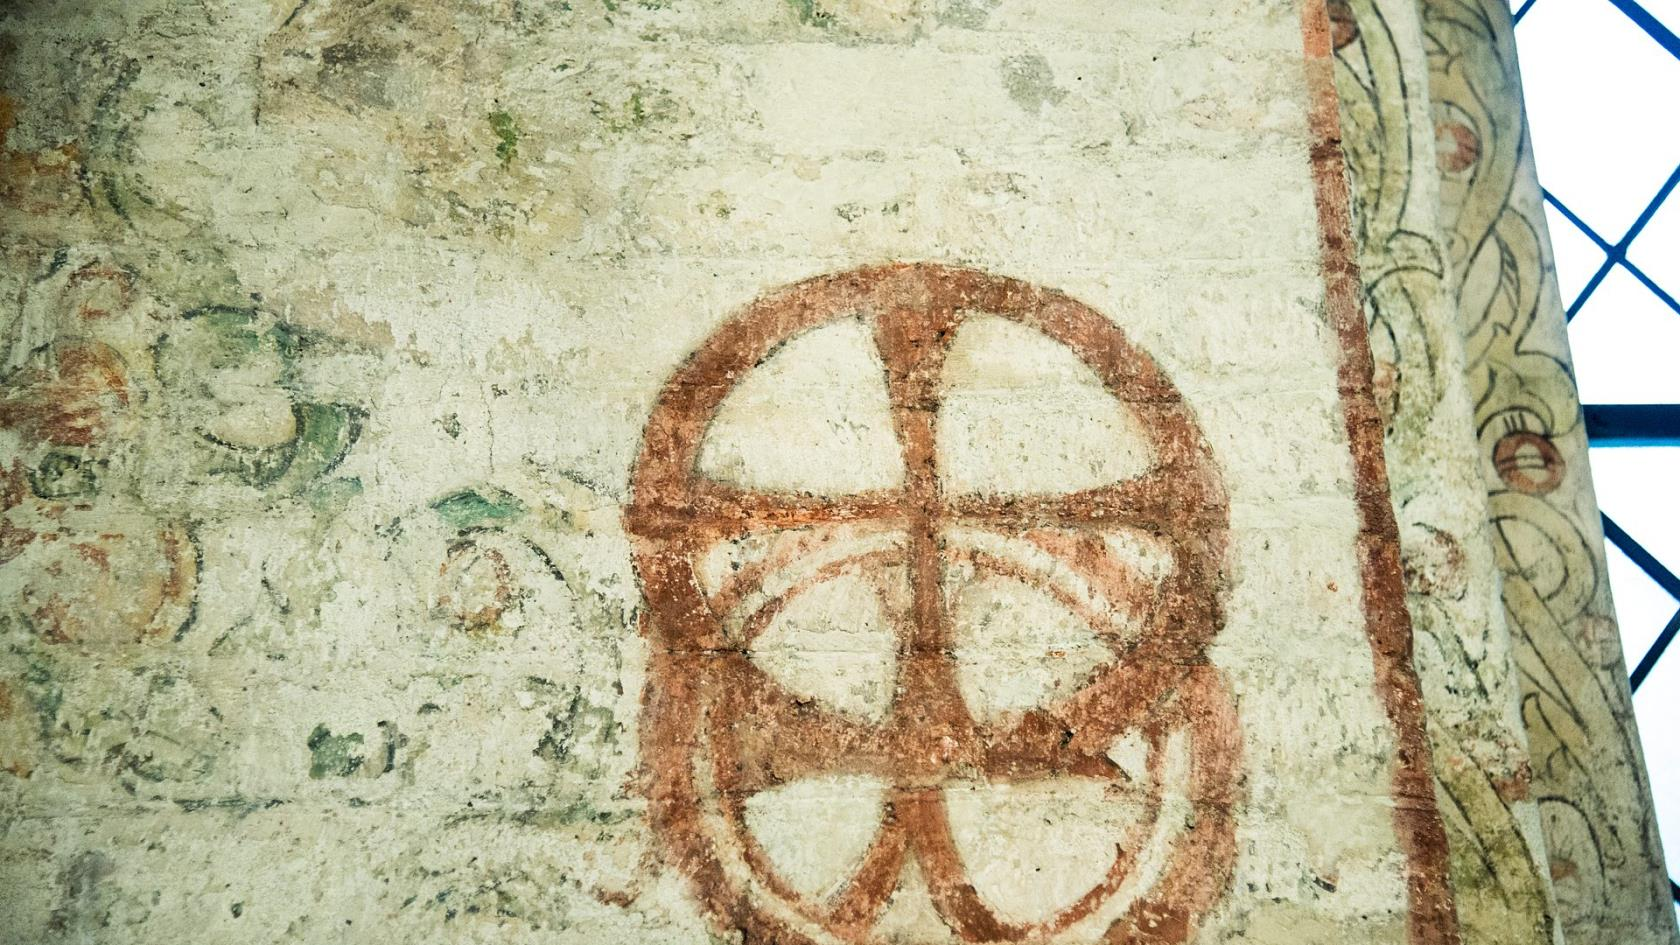 Christian symbols from long ago on a wall.